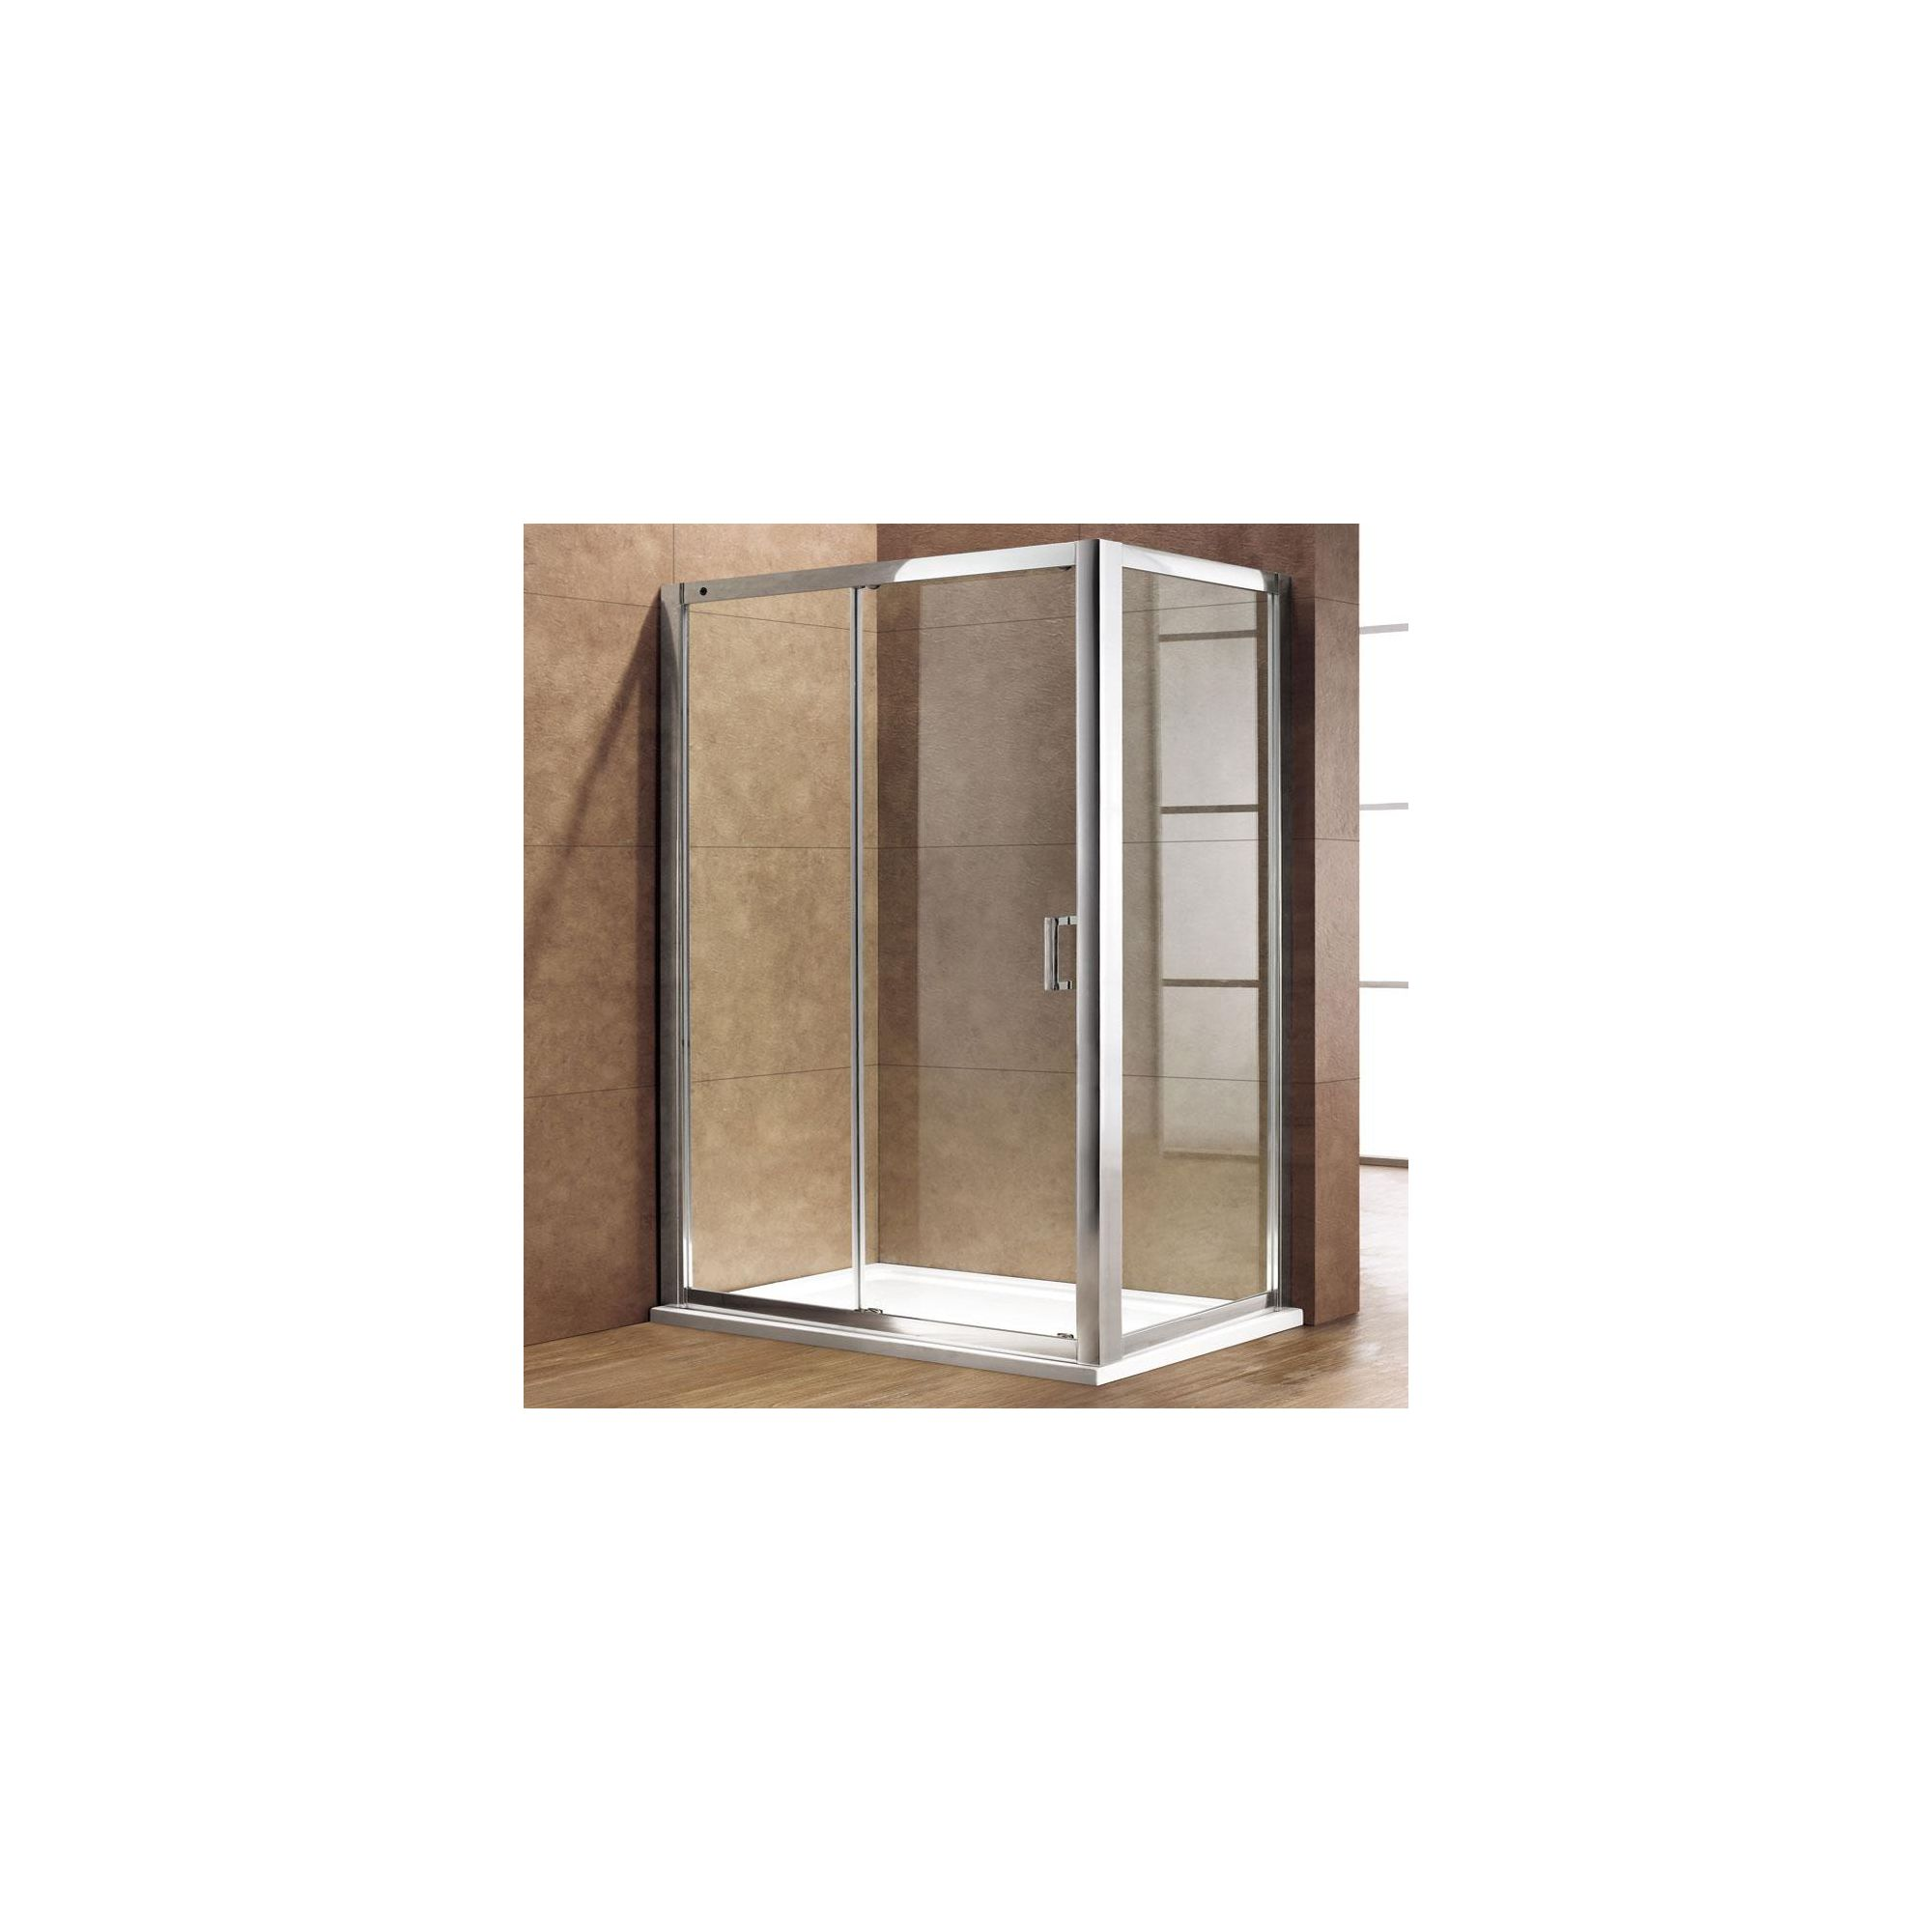 Duchy Premium Single Sliding Door Shower Enclosure, 1600mm x 900mm, 8mm Glass, Low Profile Tray at Tesco Direct